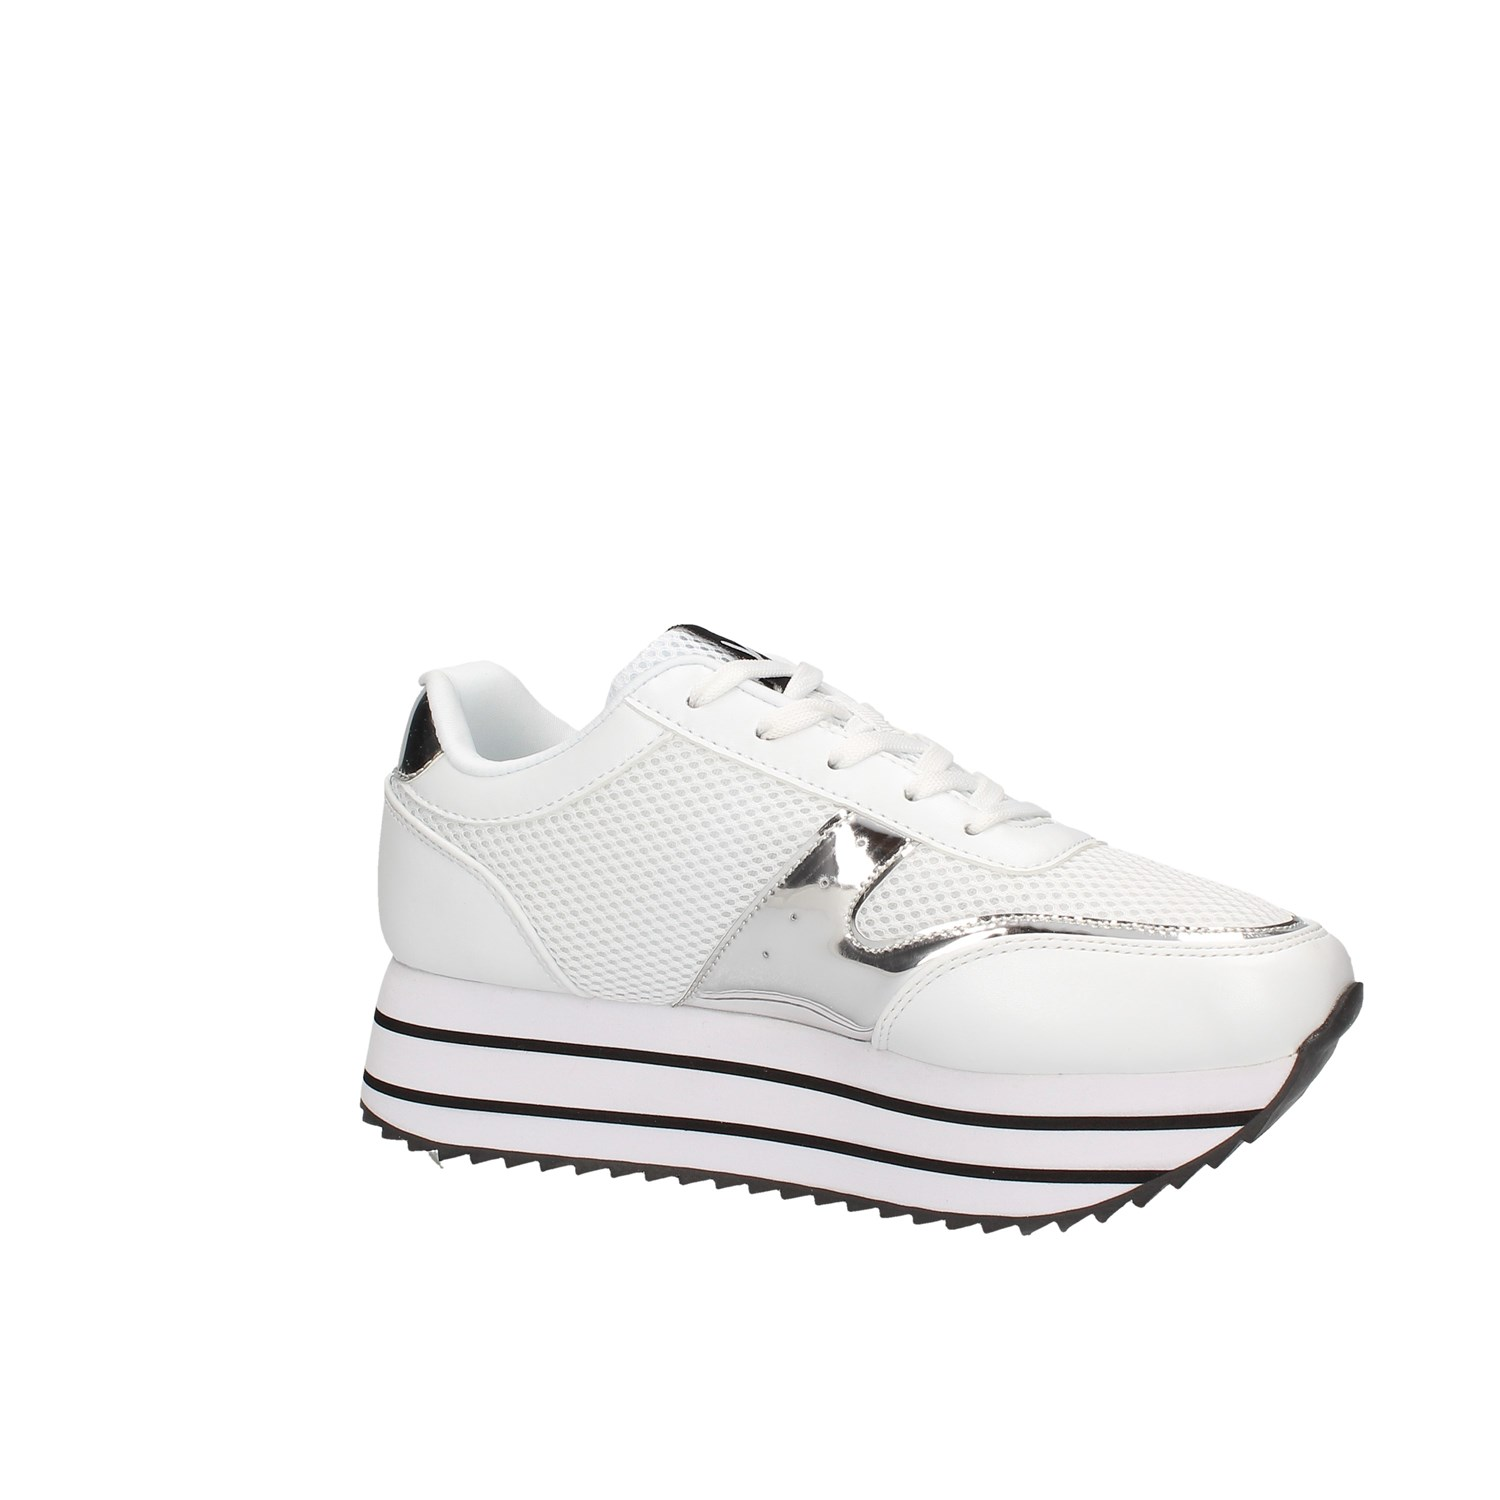 Buy Stage Line On Accessories Sneakers YnotWoman qUzMVSp